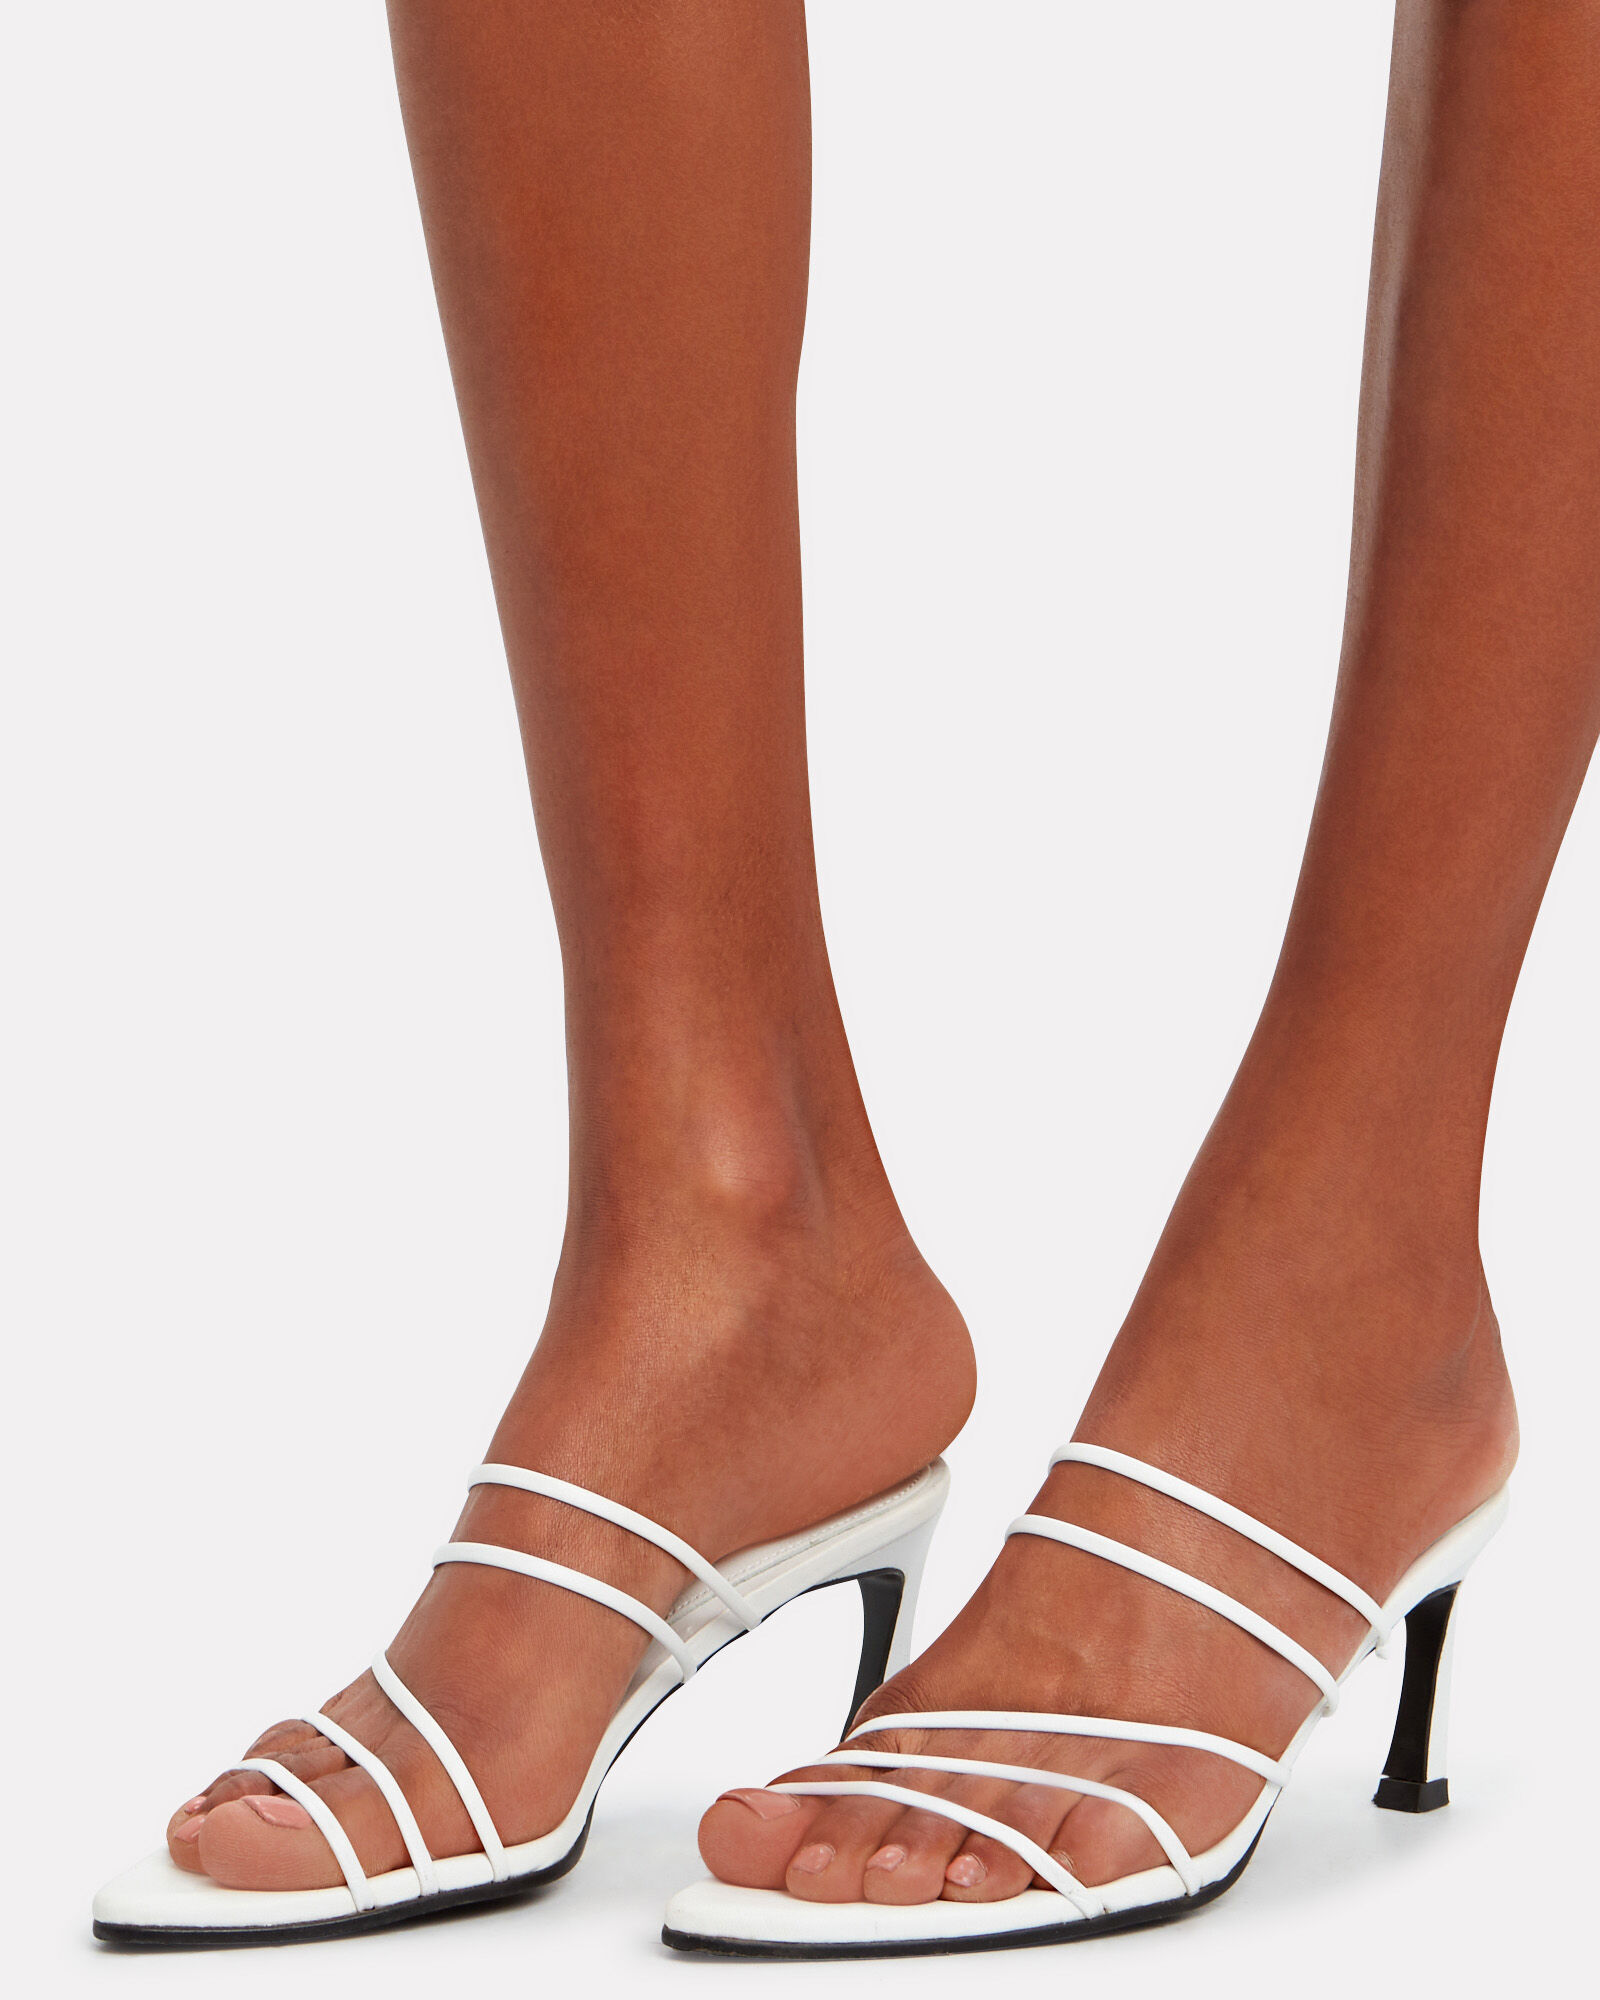 Five String Pointed Toe Sandals, WHITE, hi-res